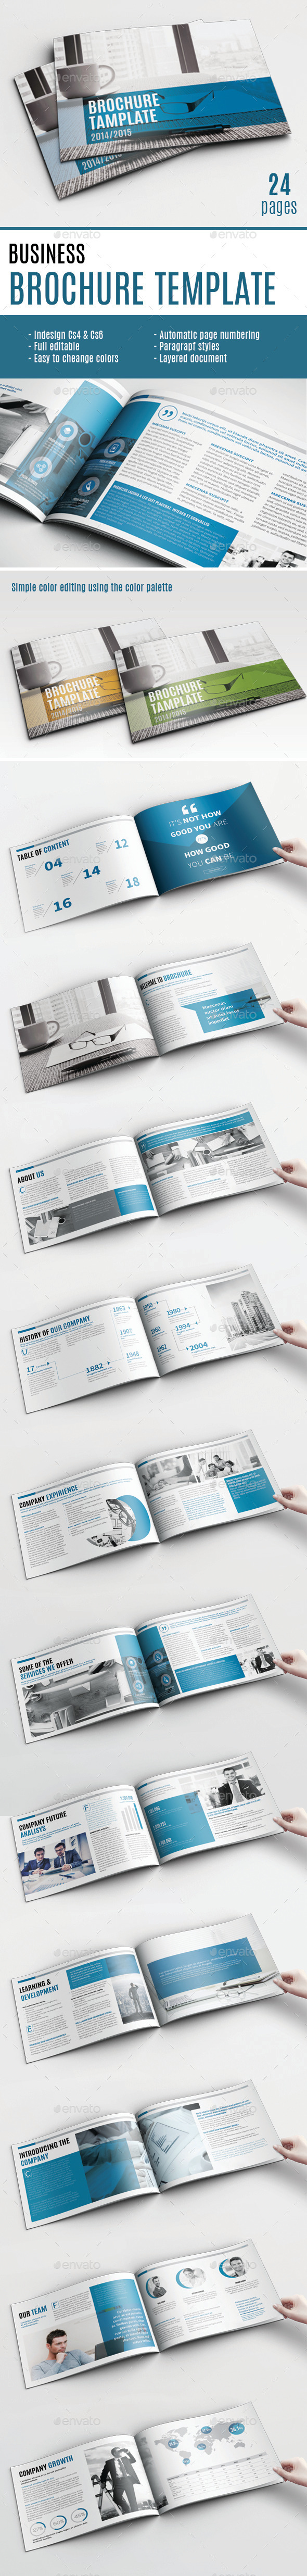 Multipurpose Brochure Template - Brochures Print Templates